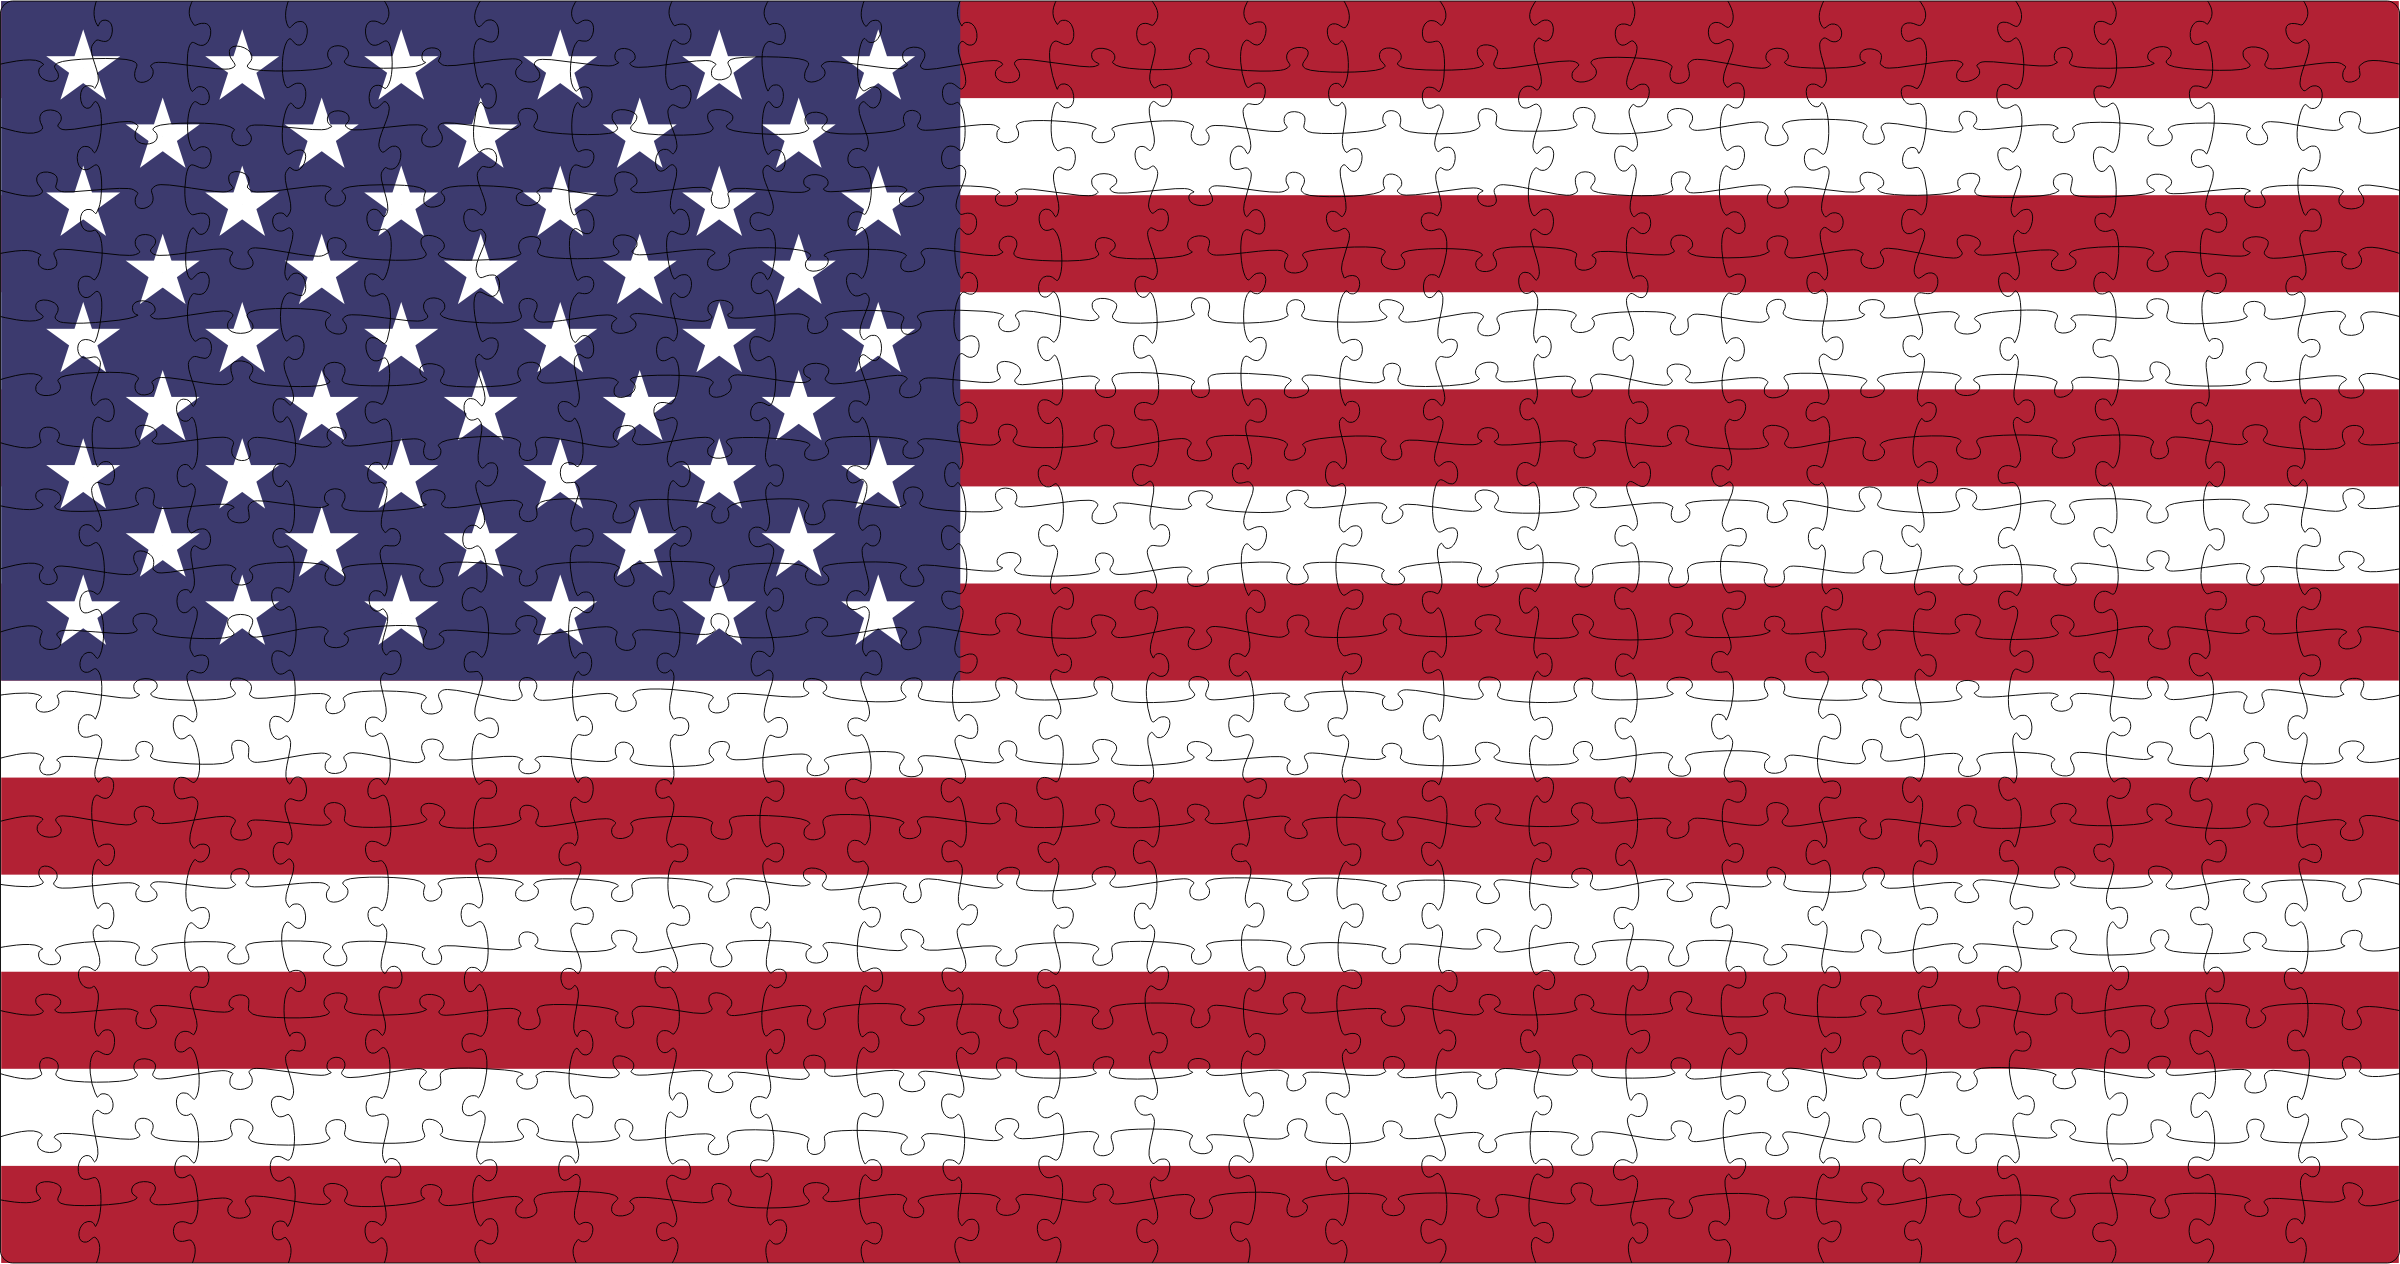 United States Flag Jigsaw Puzzle 25x20 by GDJ